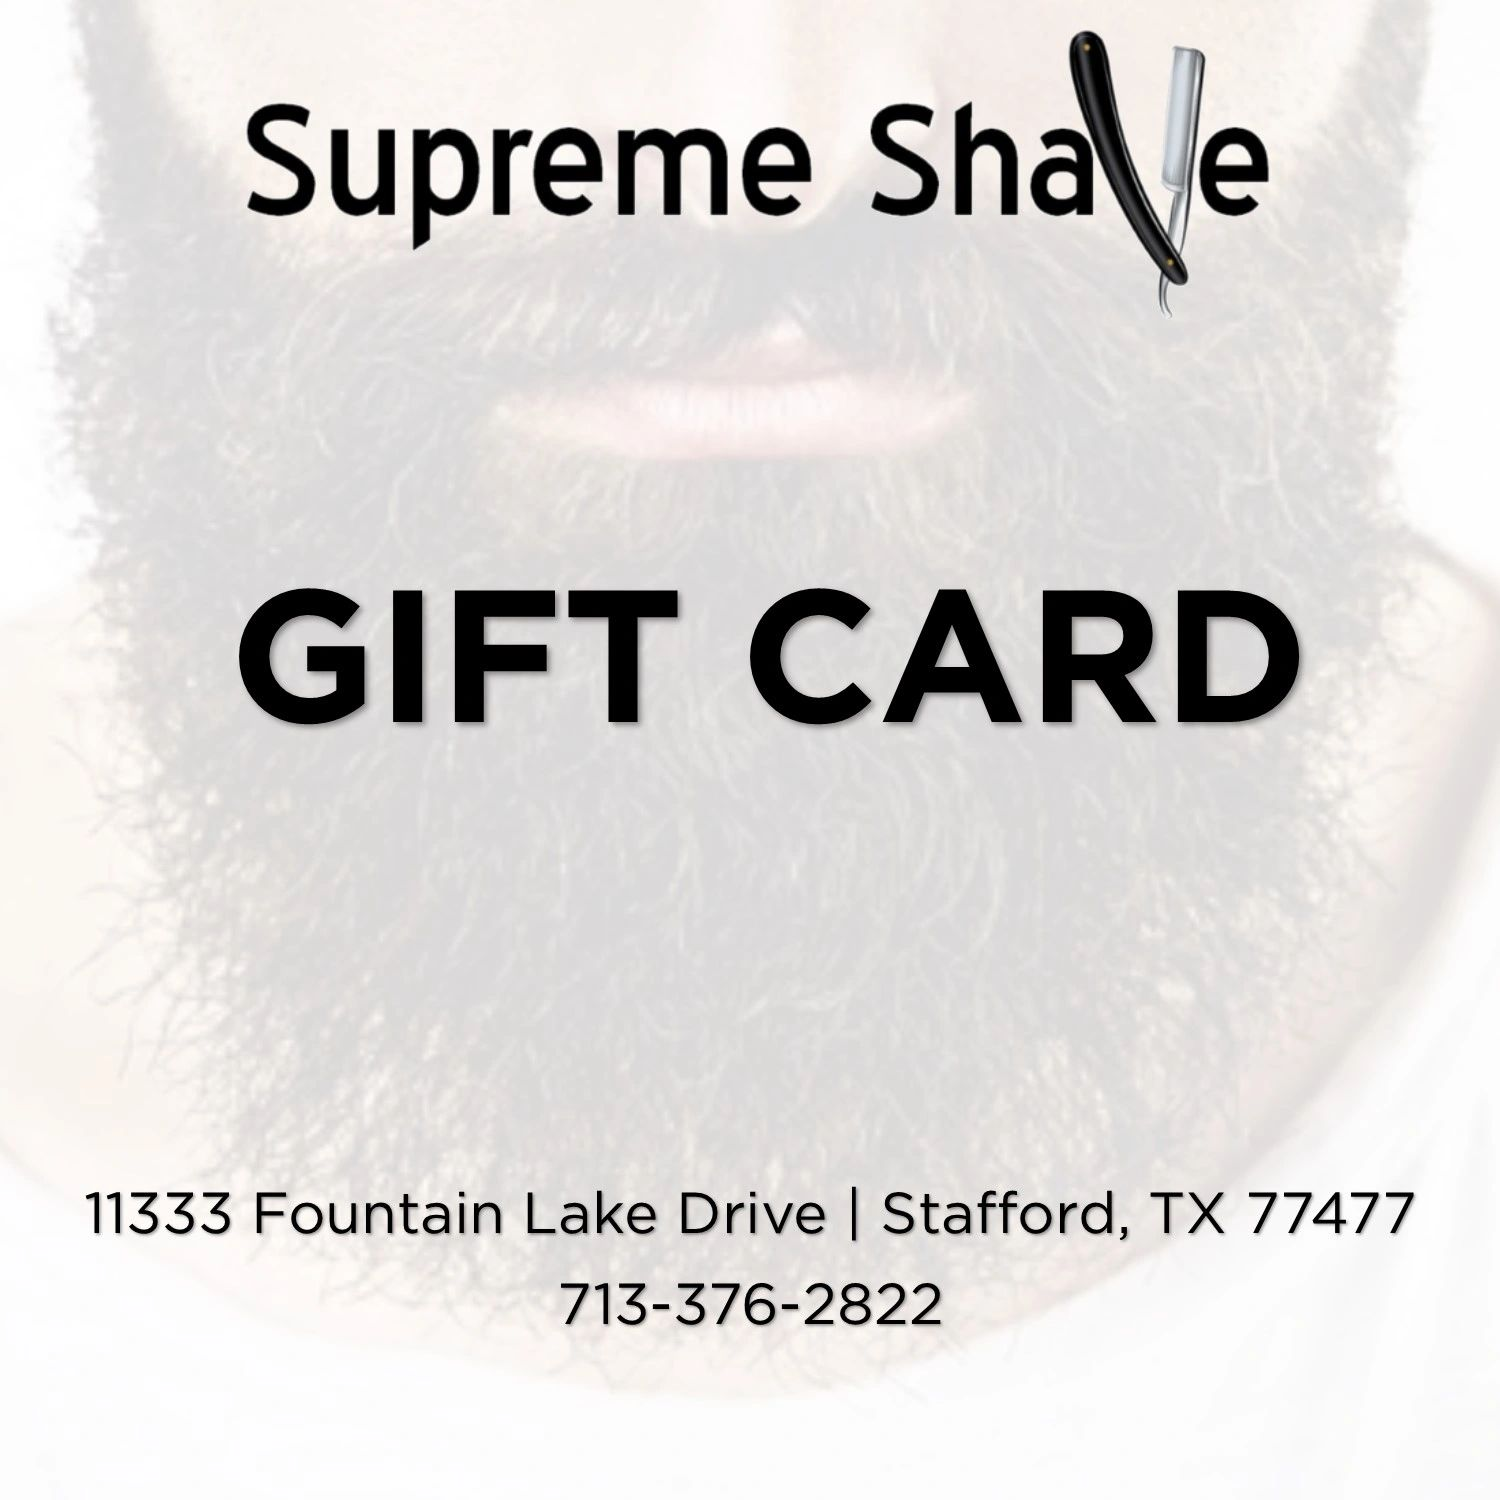 Supreme Shave Gift Card